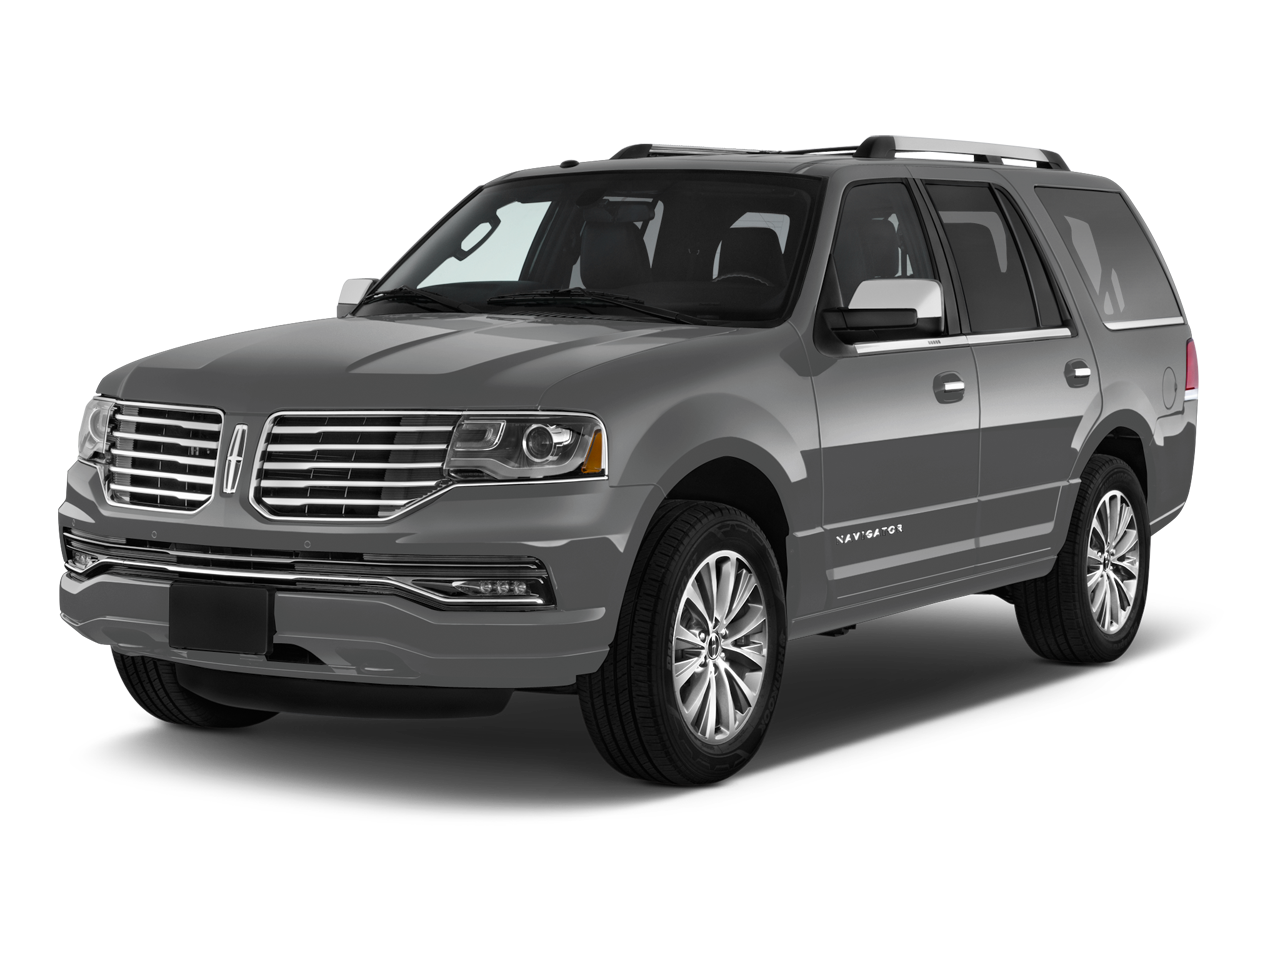 new lincoln navigator l between 79 001 and 80 000 for. Black Bedroom Furniture Sets. Home Design Ideas